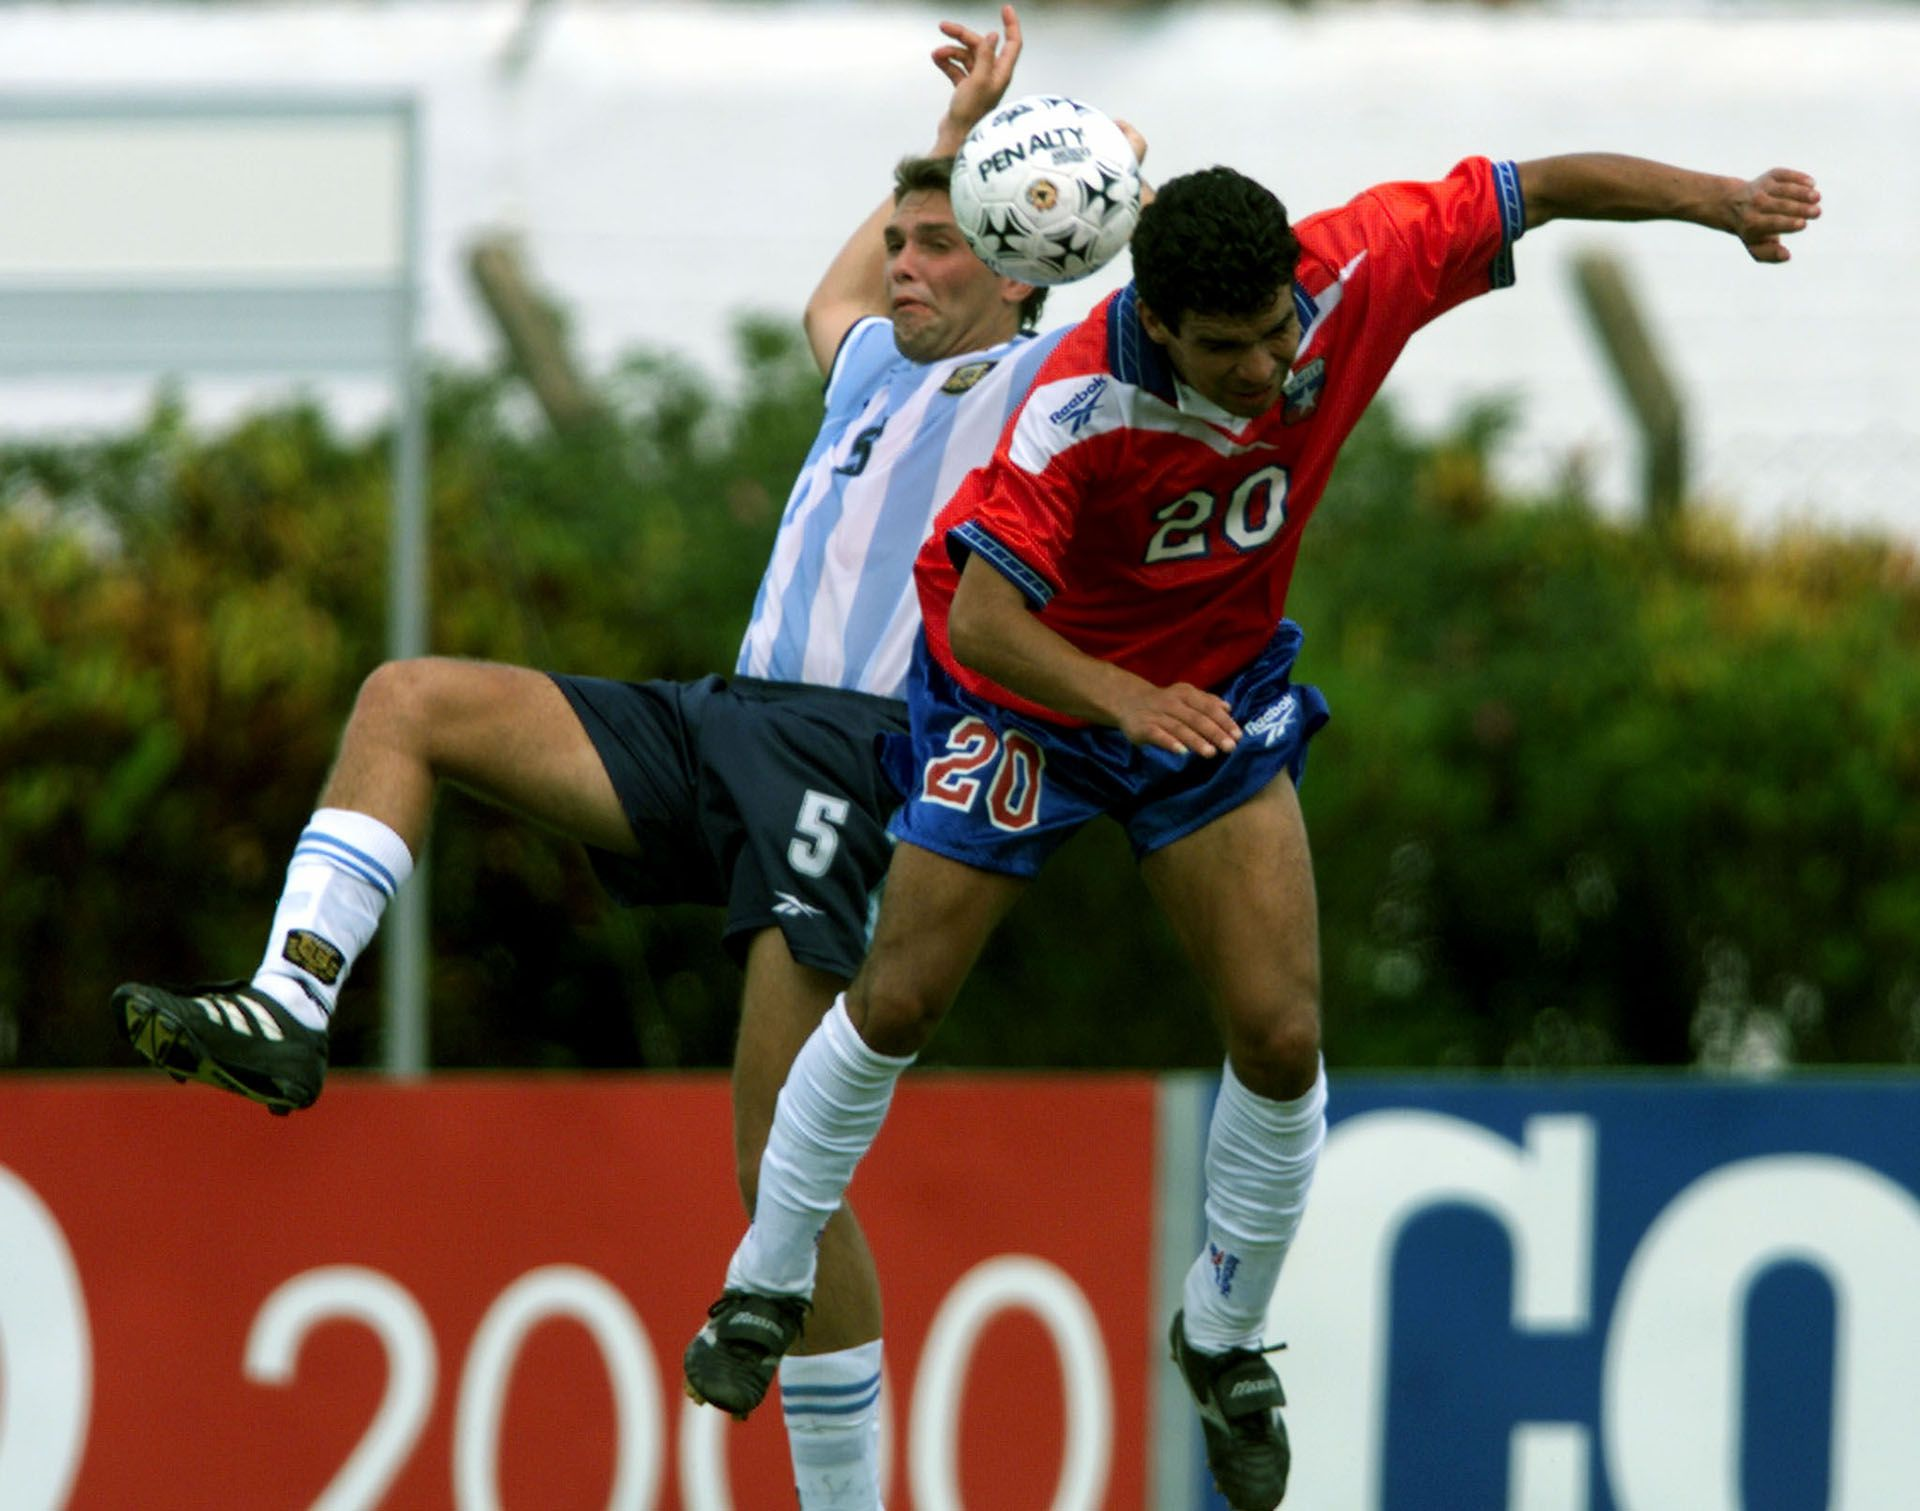 NUNEZ FROM CHILE IN ACTION WITH MARKIC FROM ARGENTINA AT PRE OLYMPIC MATCH IN LONDRINA.